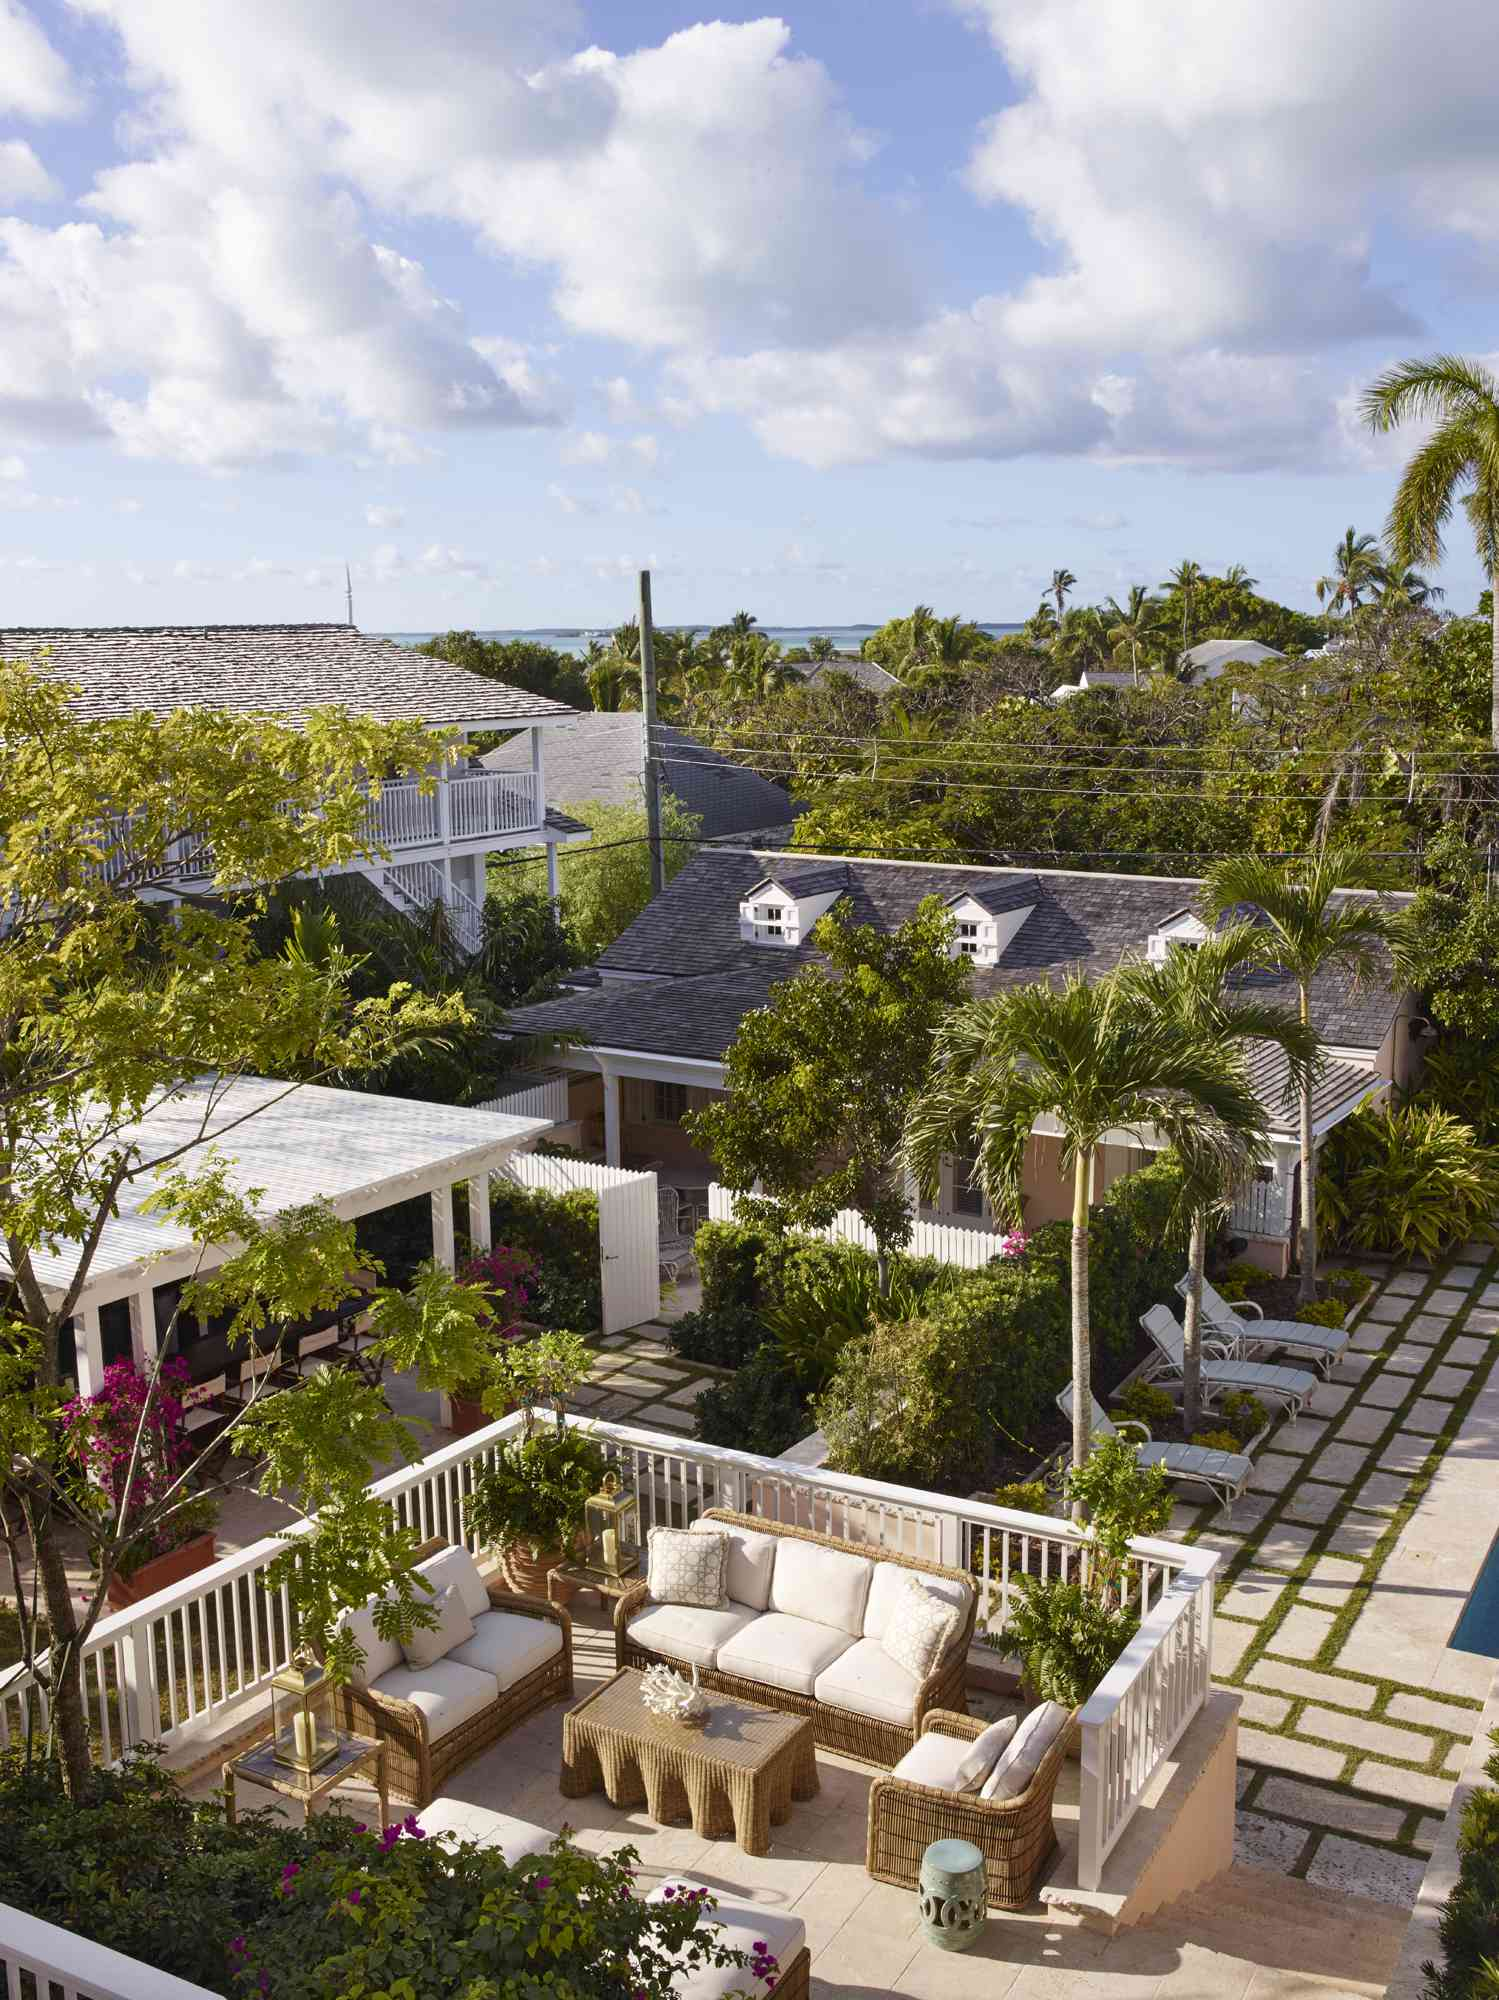 A view of Bahama House on Harbour Island